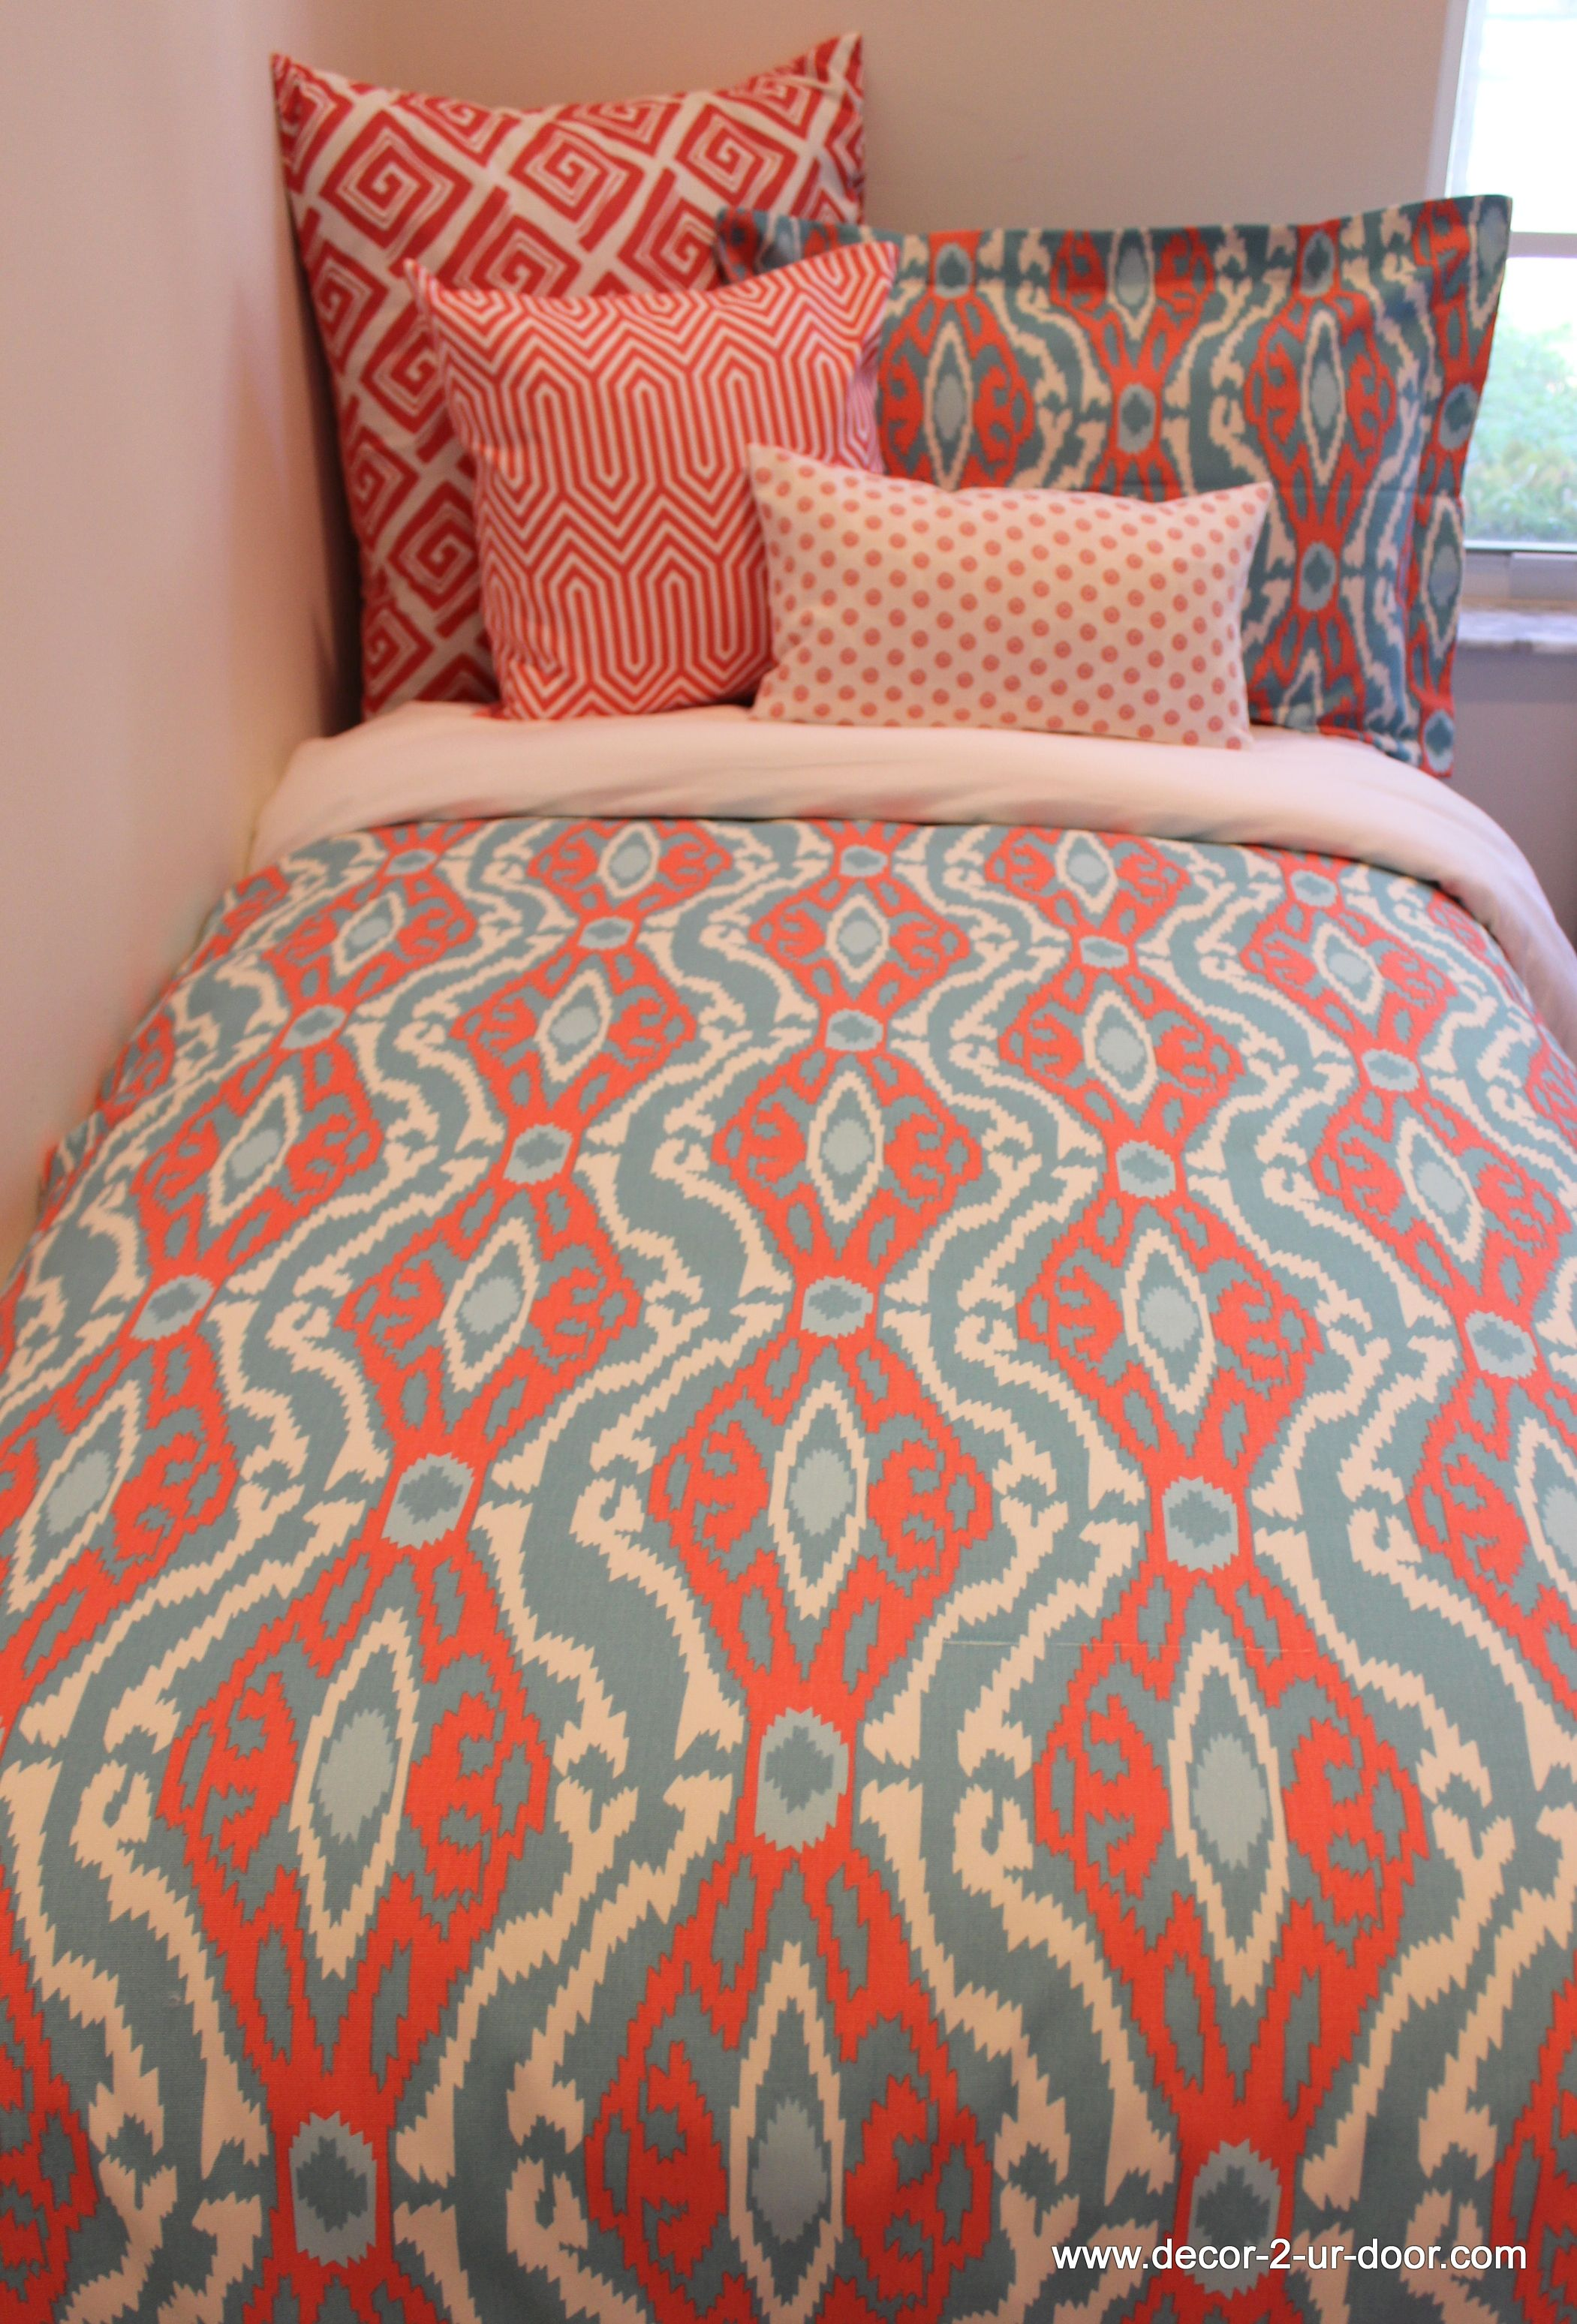 Design Your Own Dorm Room: Design Your Own Coral Duvet! BEAUTIMUS! Love This Pattern